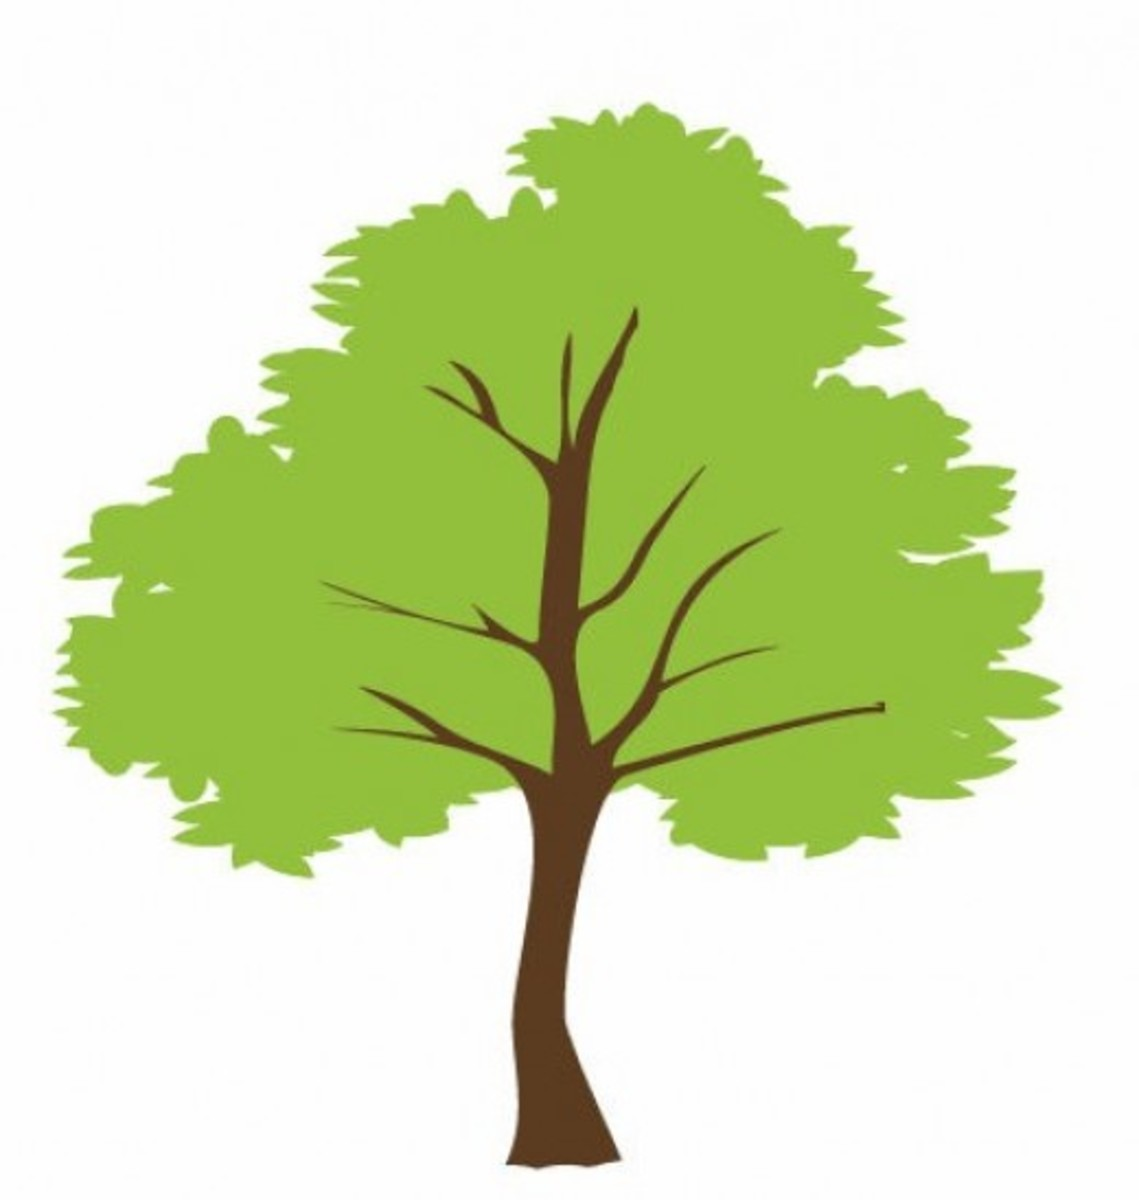 Simple Tree Image